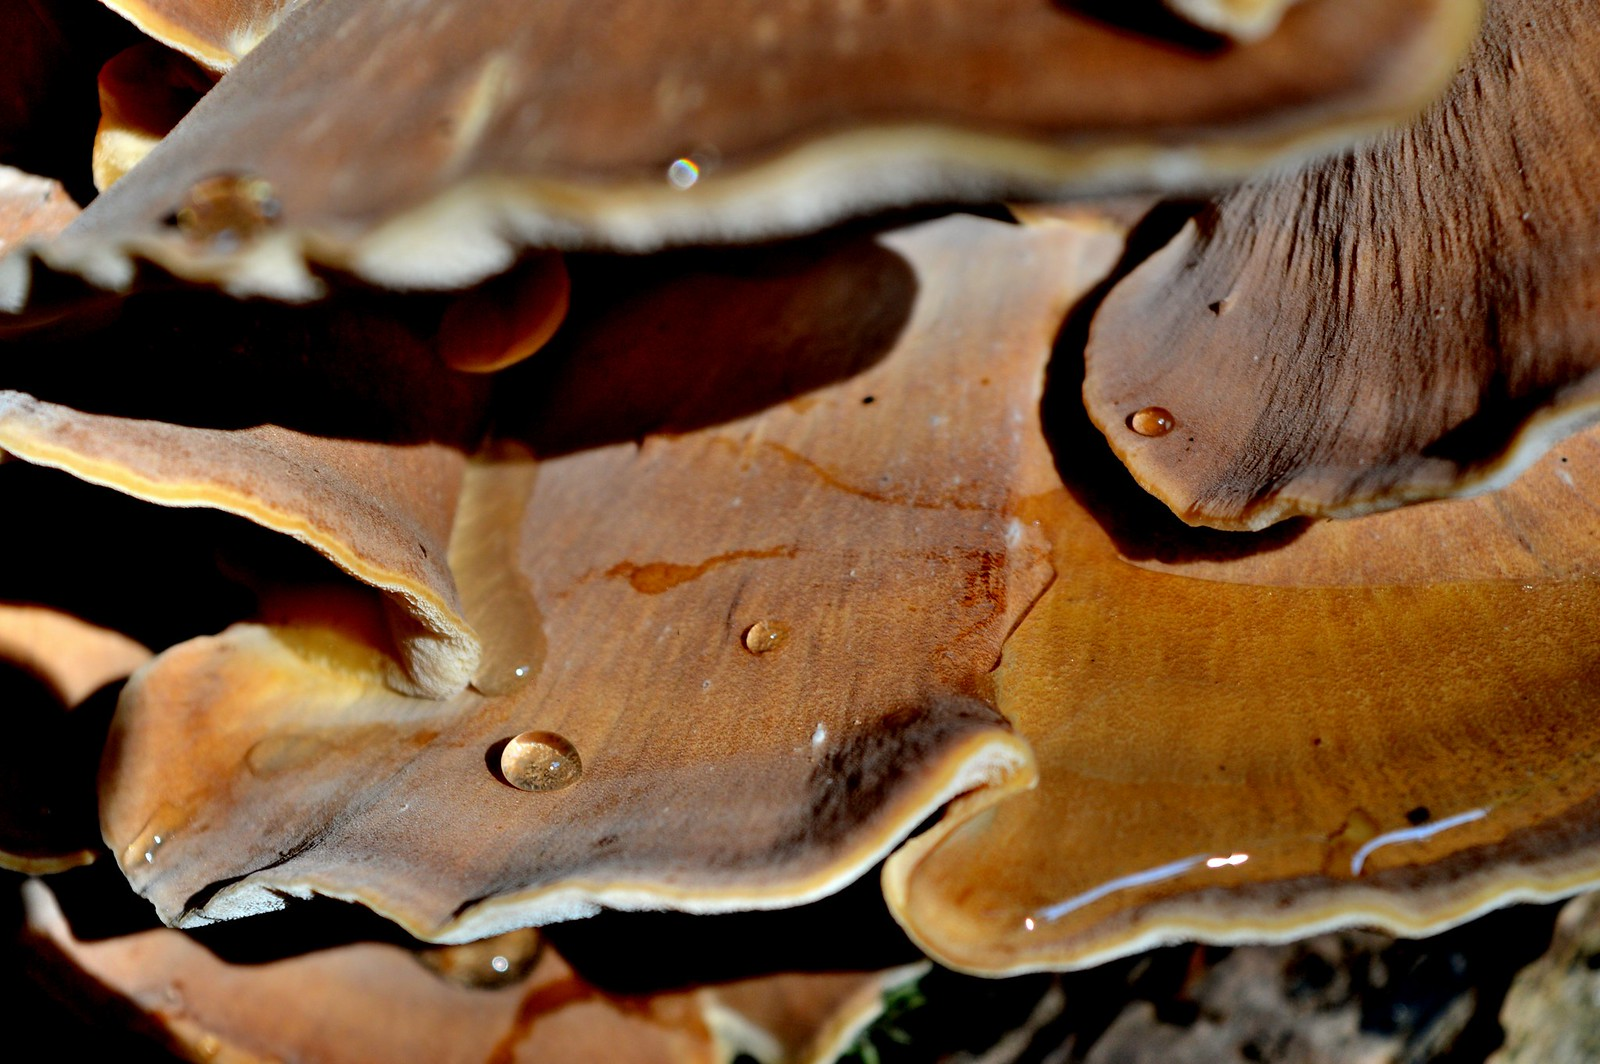 Water droplets on a mushroom.